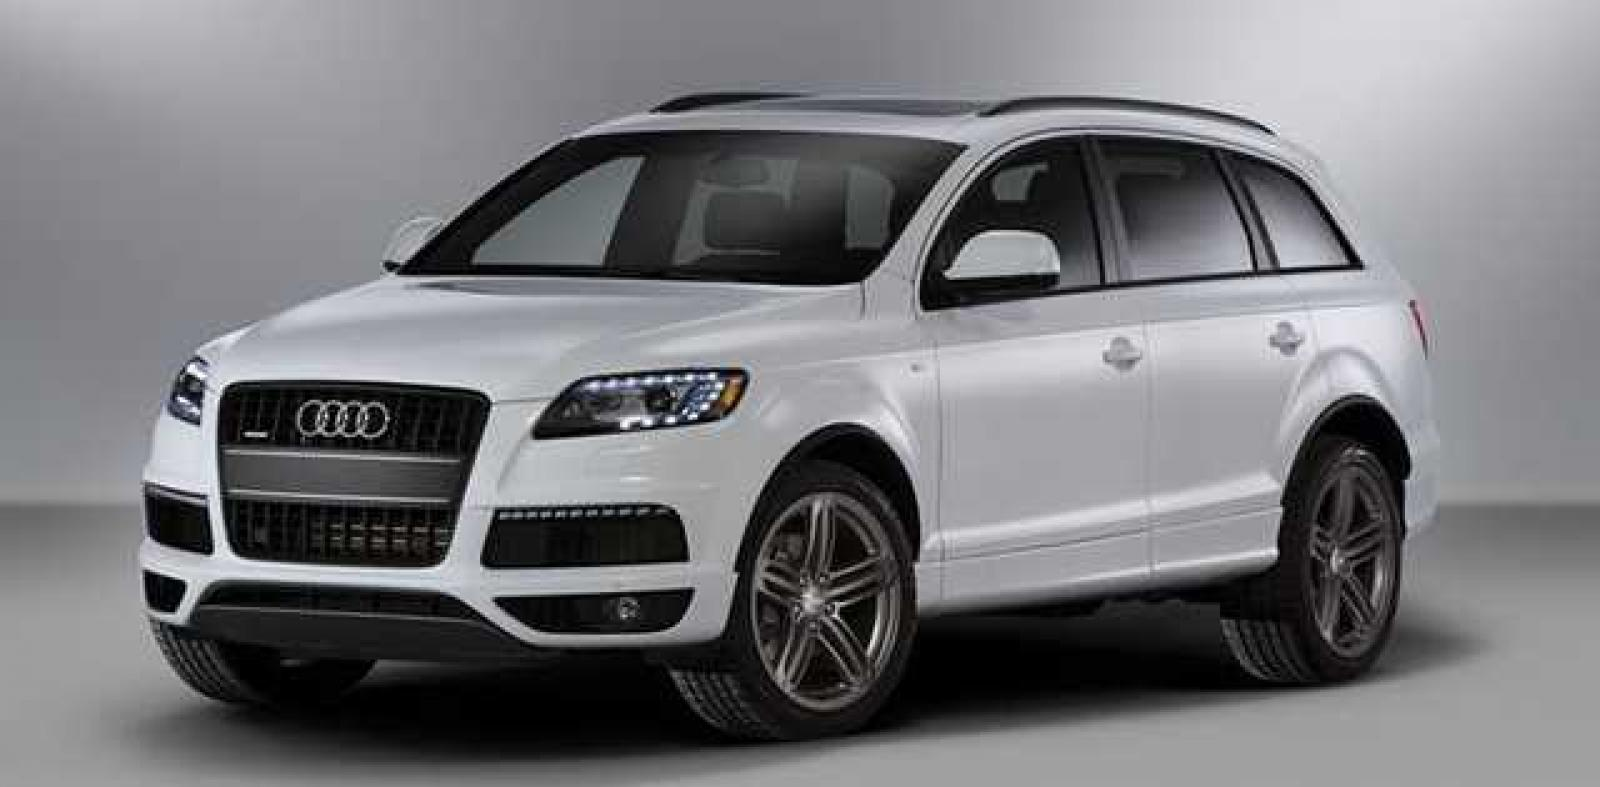 2015 audi q7 information and photos zombiedrive. Black Bedroom Furniture Sets. Home Design Ideas